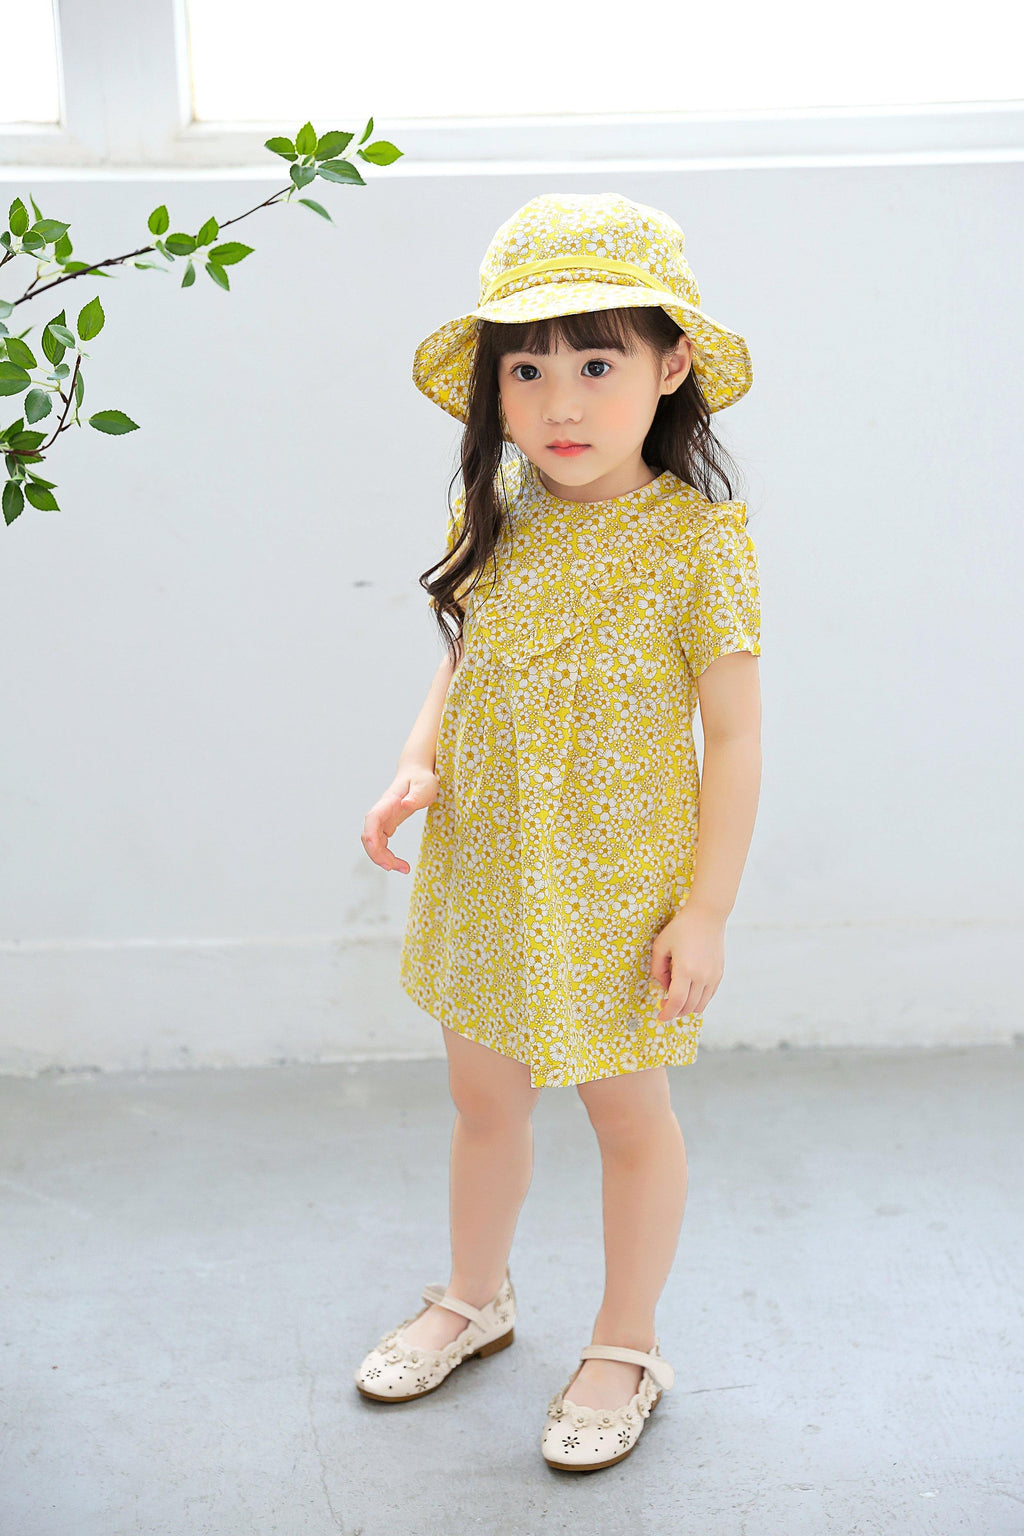 Cassidy Floral Organic Outfit - Organic Mom Hong Kong